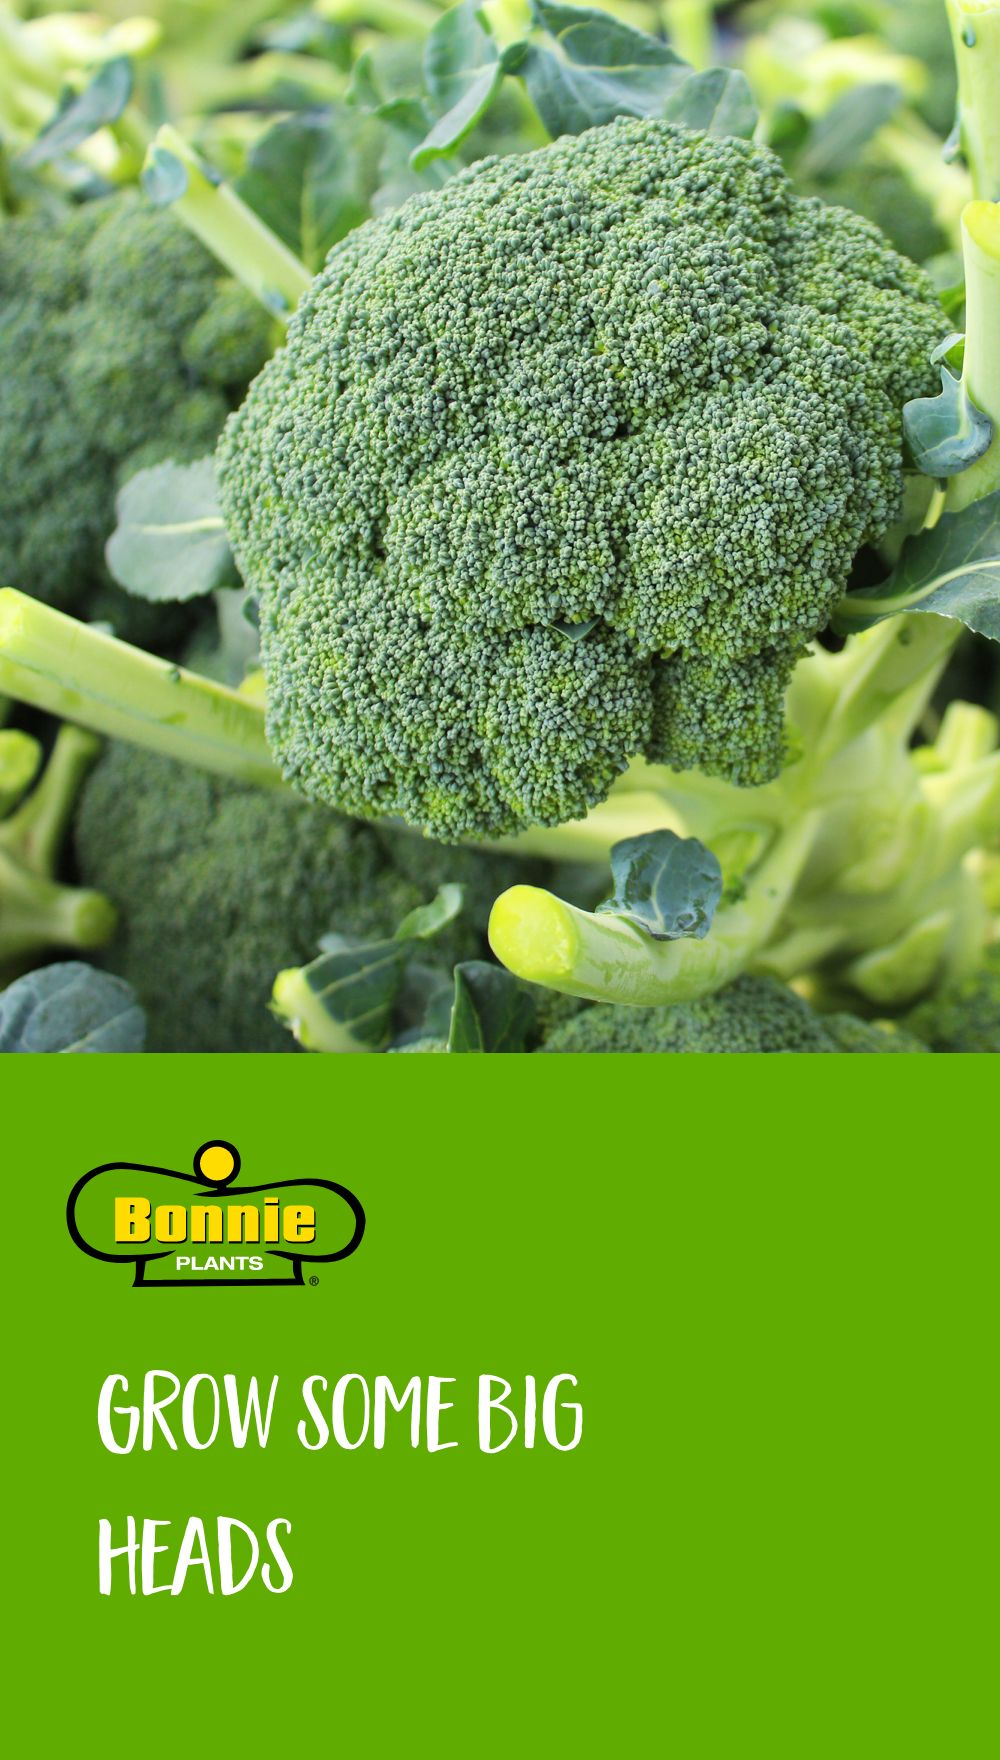 When growing broccoli, plant when it's cool, lop off the